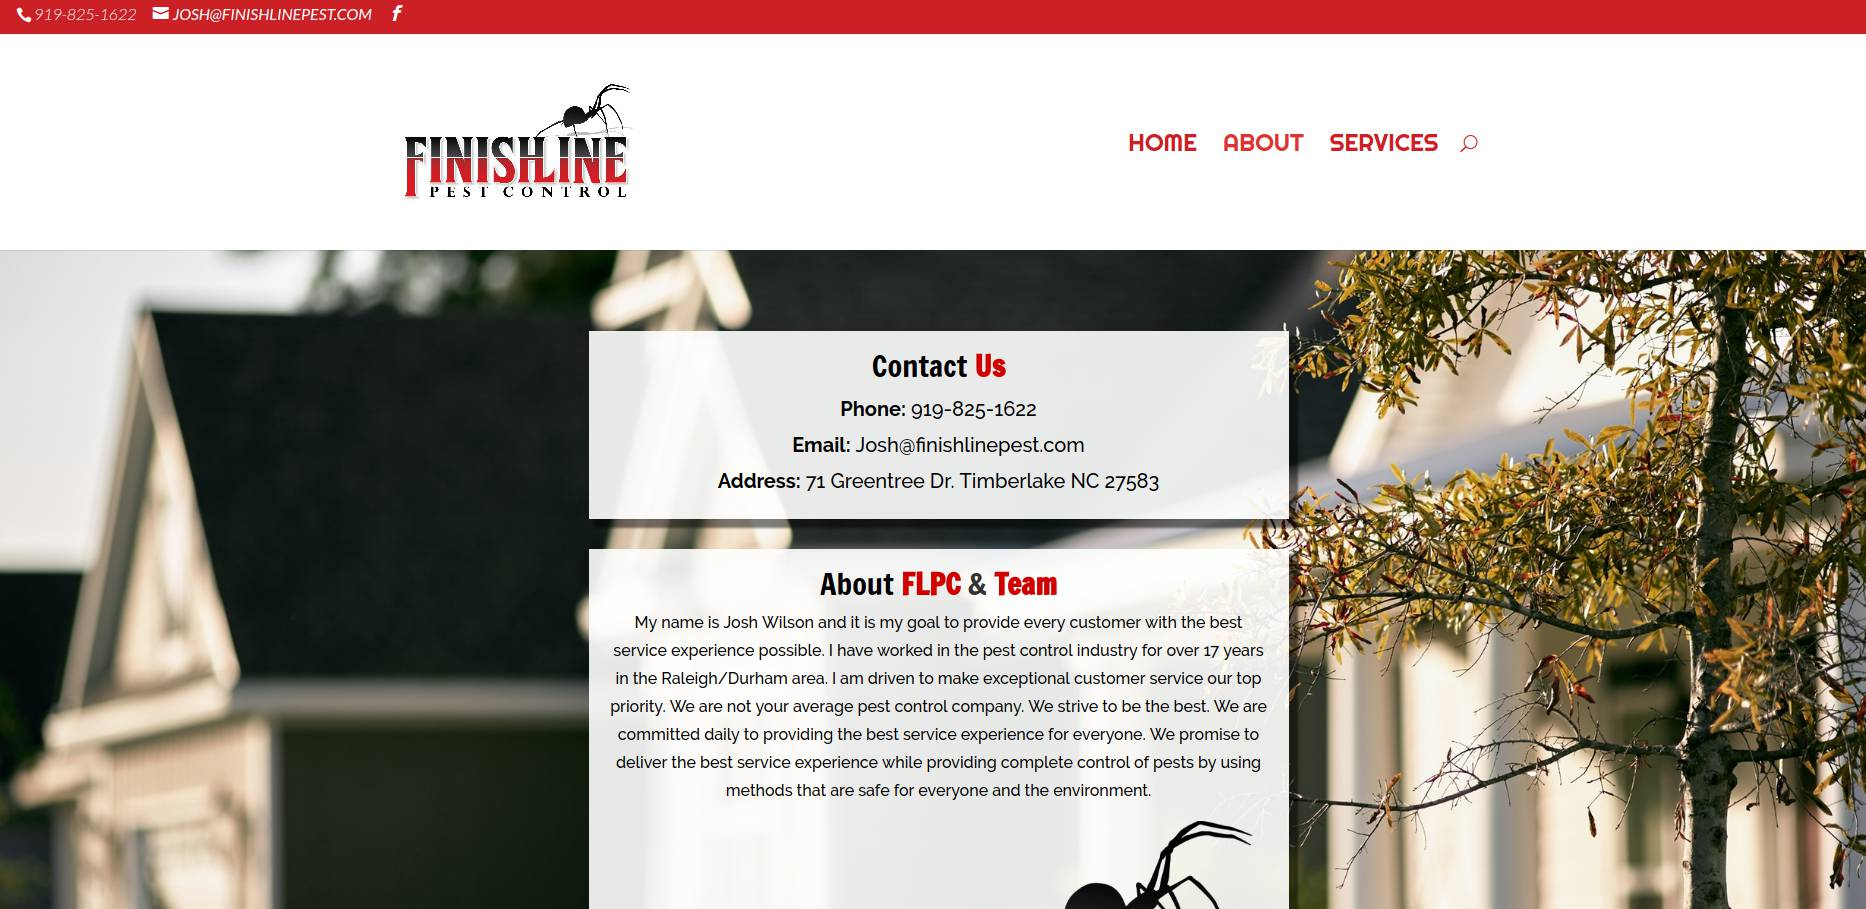 finish-line-pest-control-durham-nc-about